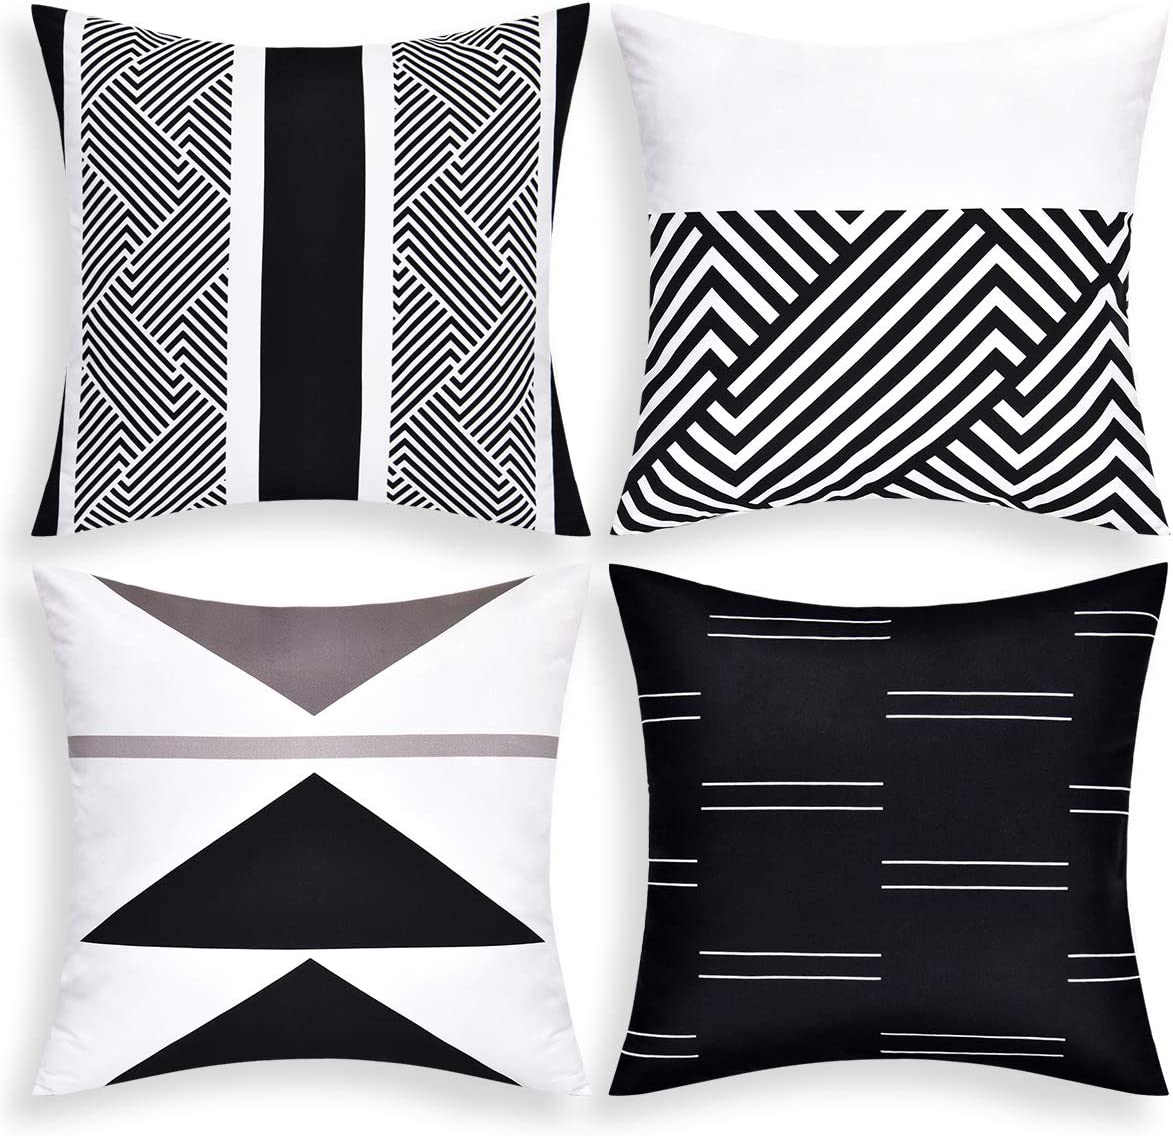 """VERTKREA Throw Pillow Covers Modern Geometric Pillowcase Set of 4 Throw Cushion Cover for Bed Couch Sofa Office Decor (Black and White, 16"""" × 16"""")"""